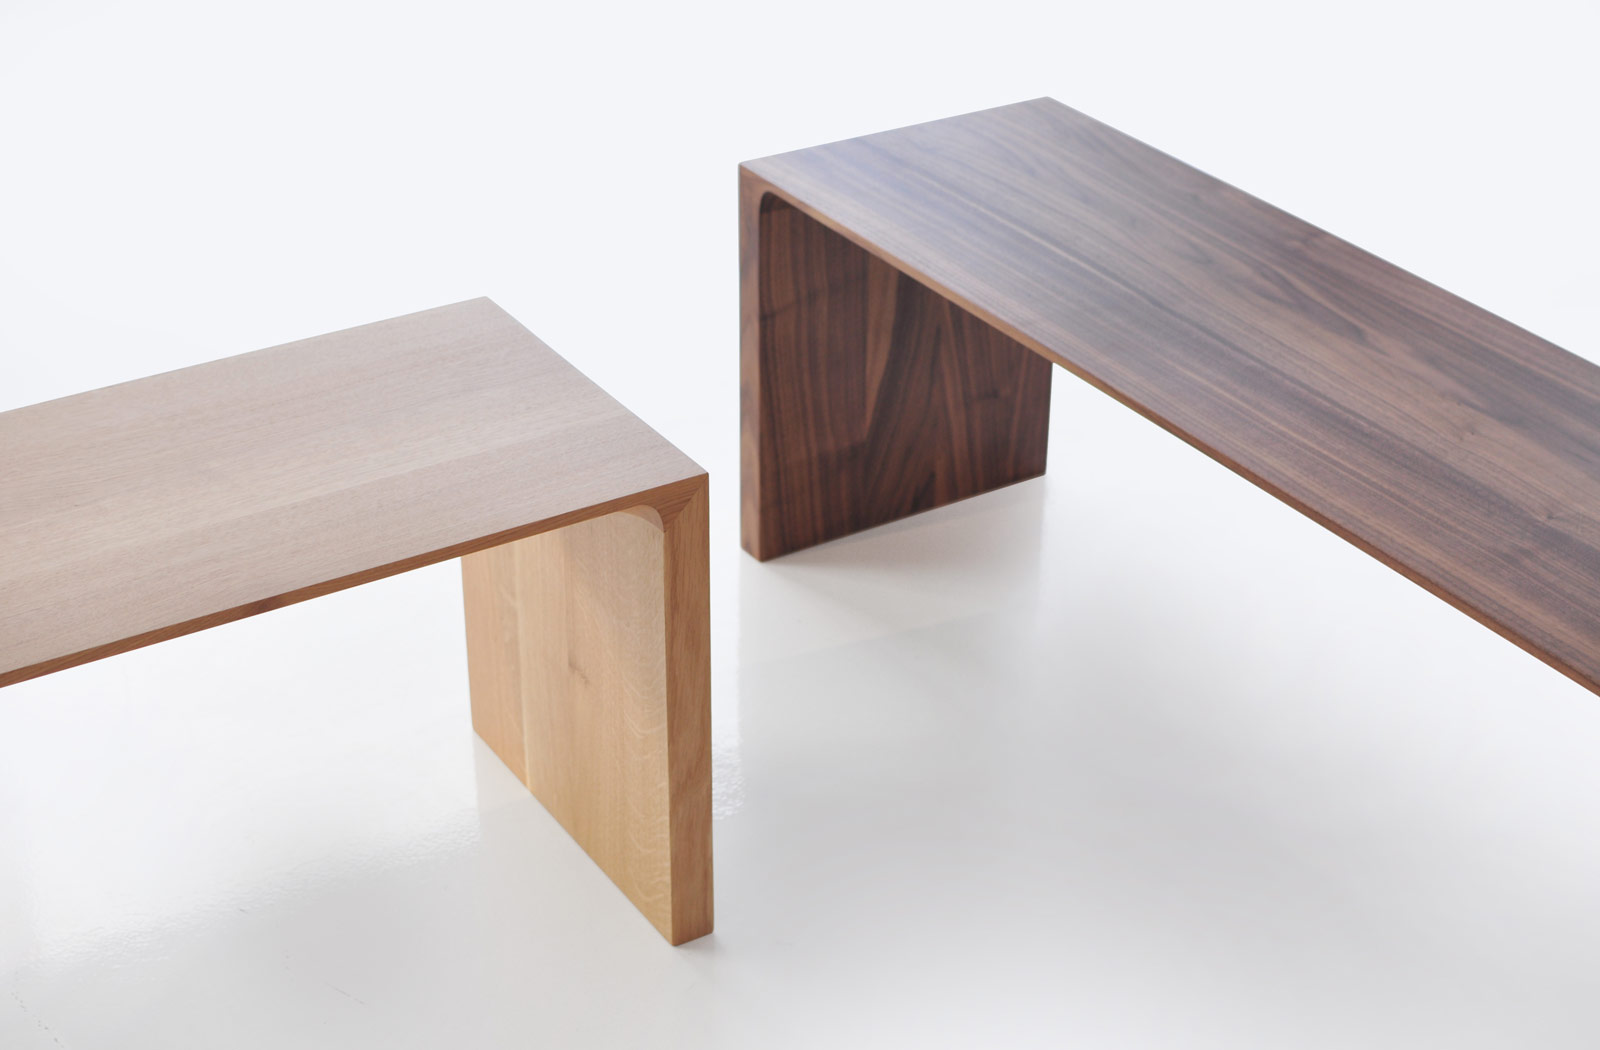 bensen bench wood radius products radii modern